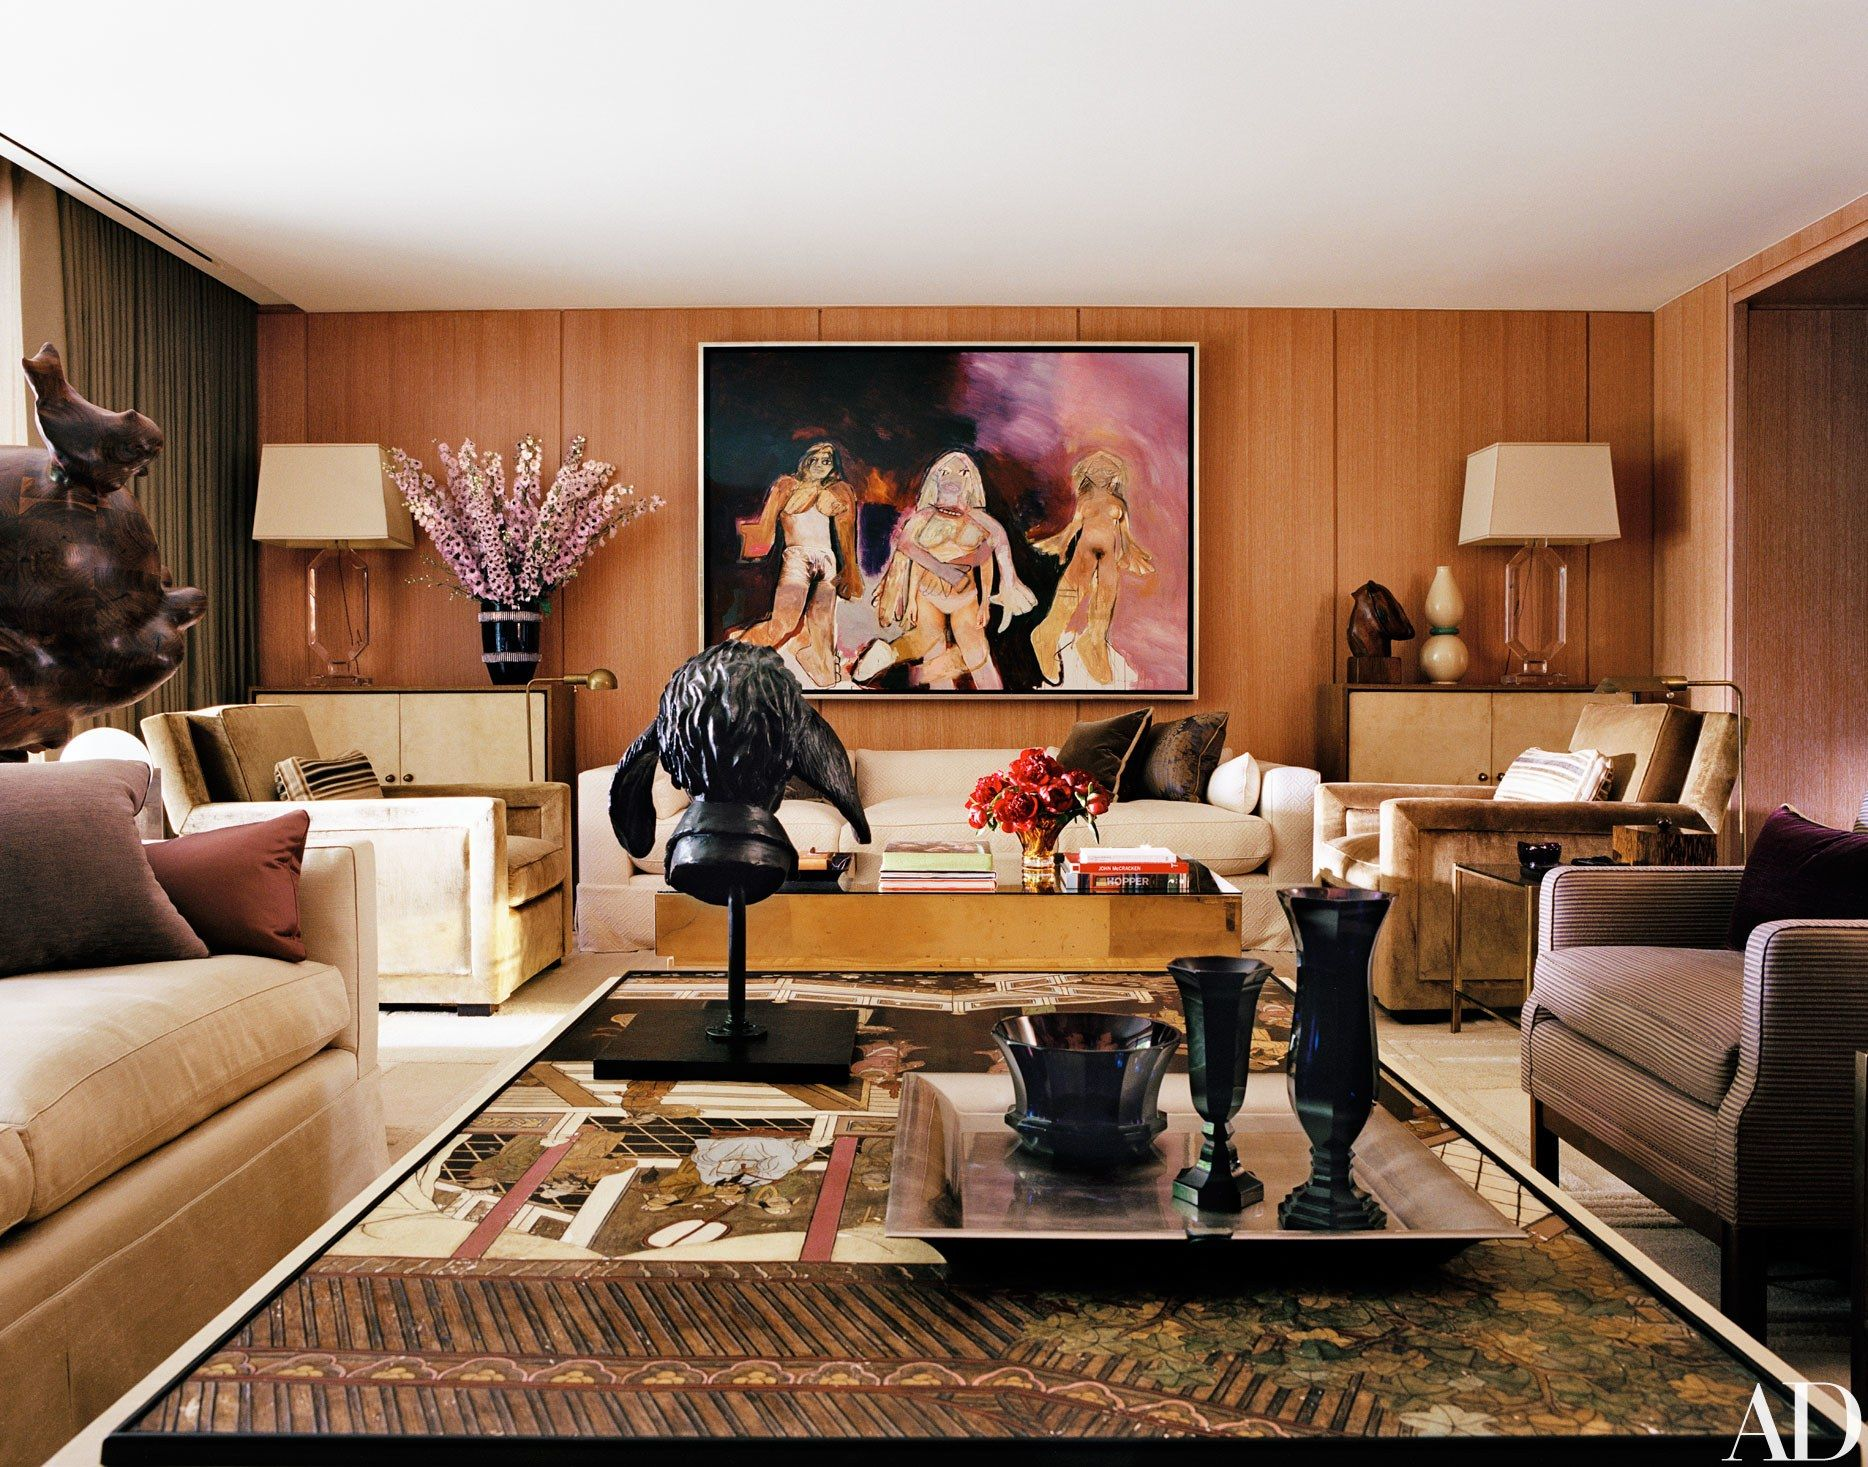 2873 best interior decor ideas images on pinterest architectural at home with marc jacobs and neville his insta famous bull terrier new york townhousemedia roomstv roomsarchitectural digestbull